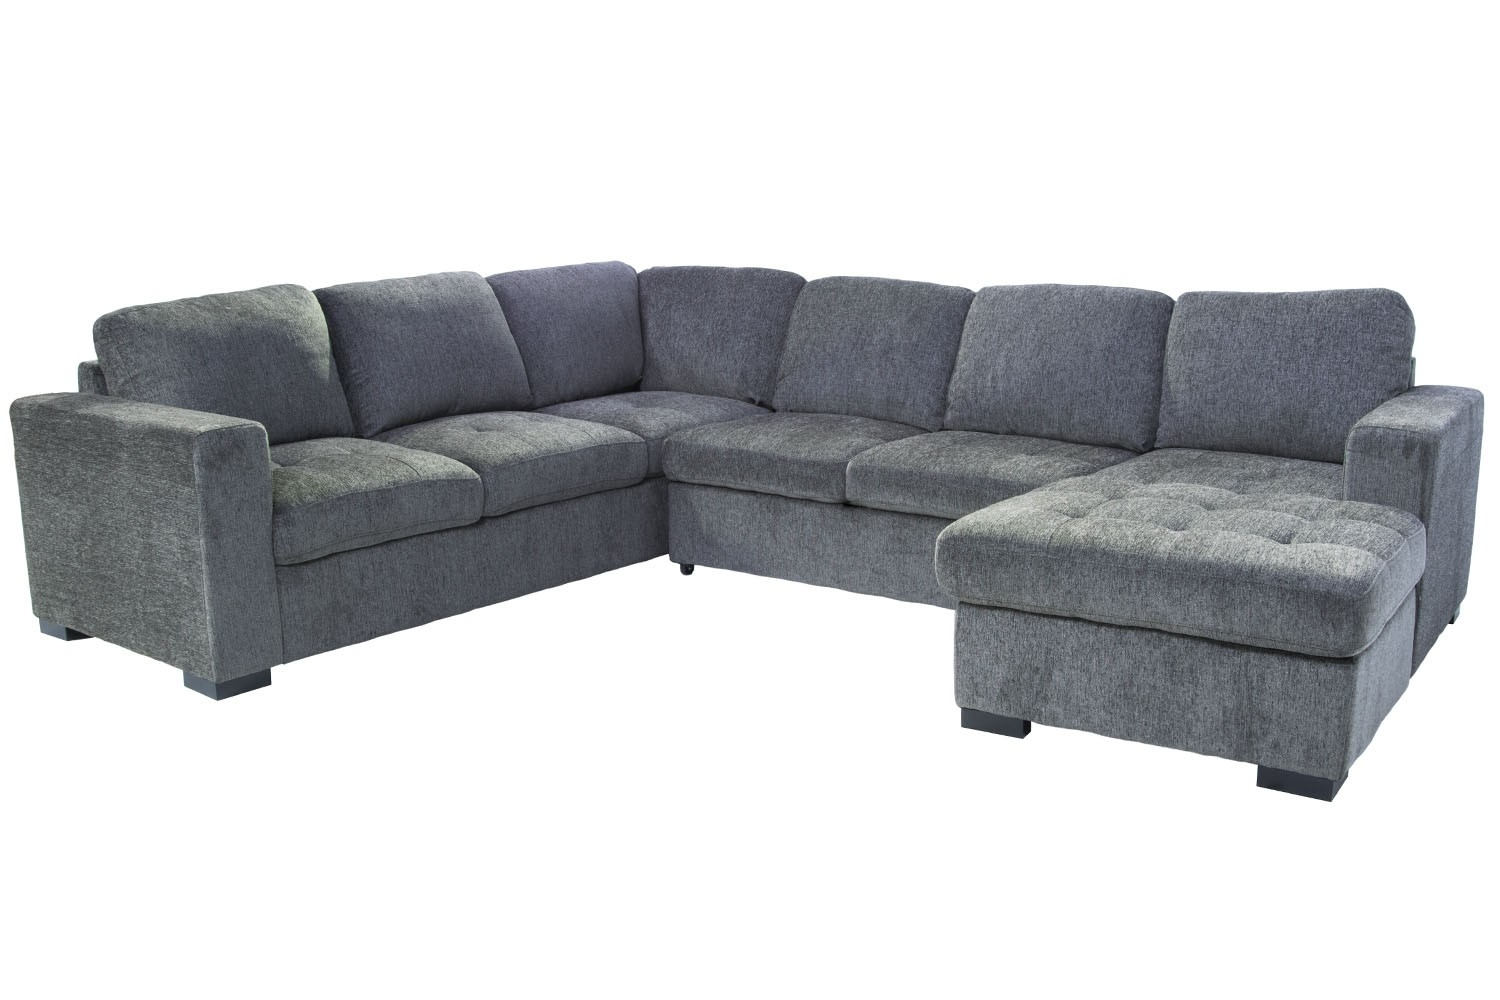 Claire 3-Piece Right-Facing Chaise Sectional In Gray | Save Mor throughout Aquarius Light Grey 2 Piece Sectionals With Laf Chaise (Image 12 of 30)